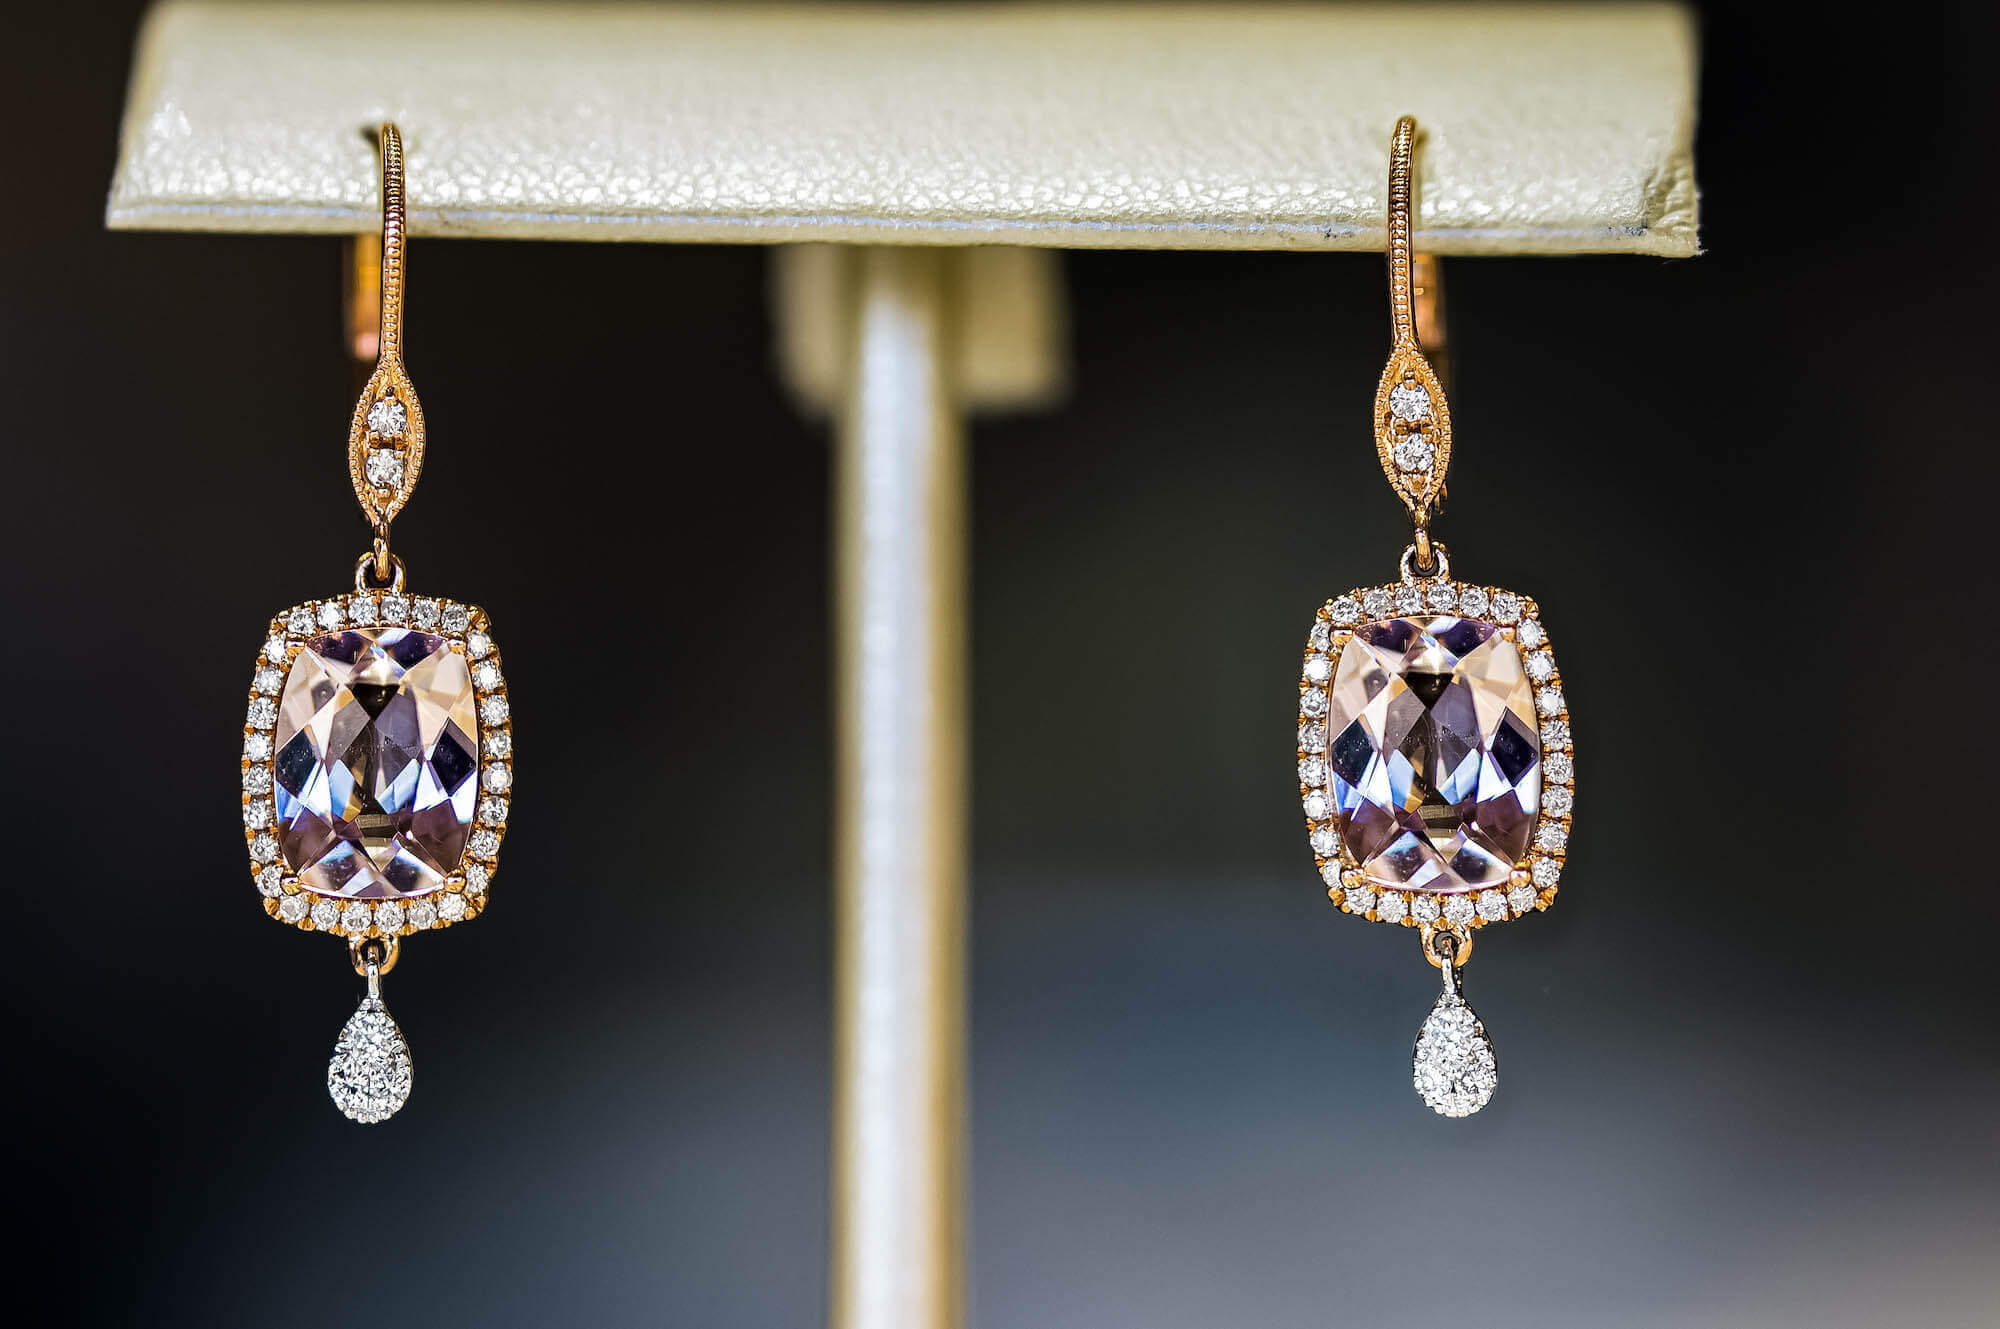 pair of light purple rectangular gemstones set in a pair of earrings. gemstone is surrounding with diamonds, and the top and bottom of each earring have an additional diamond